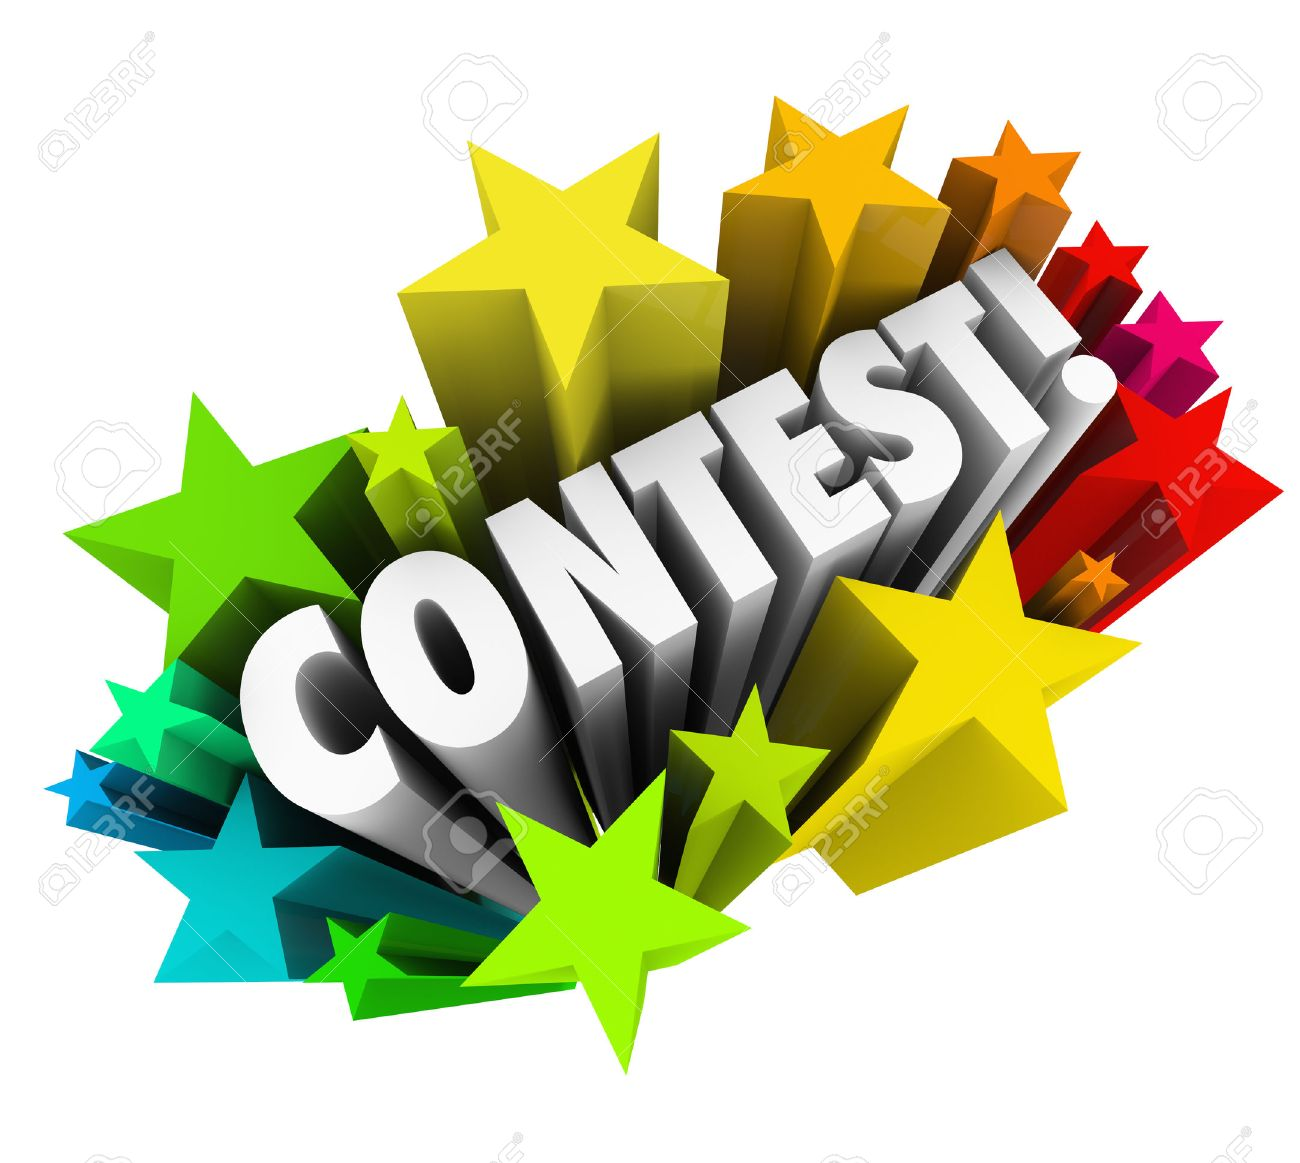 Contest word in 3d letters to announce exciting news of a raffle drawing game